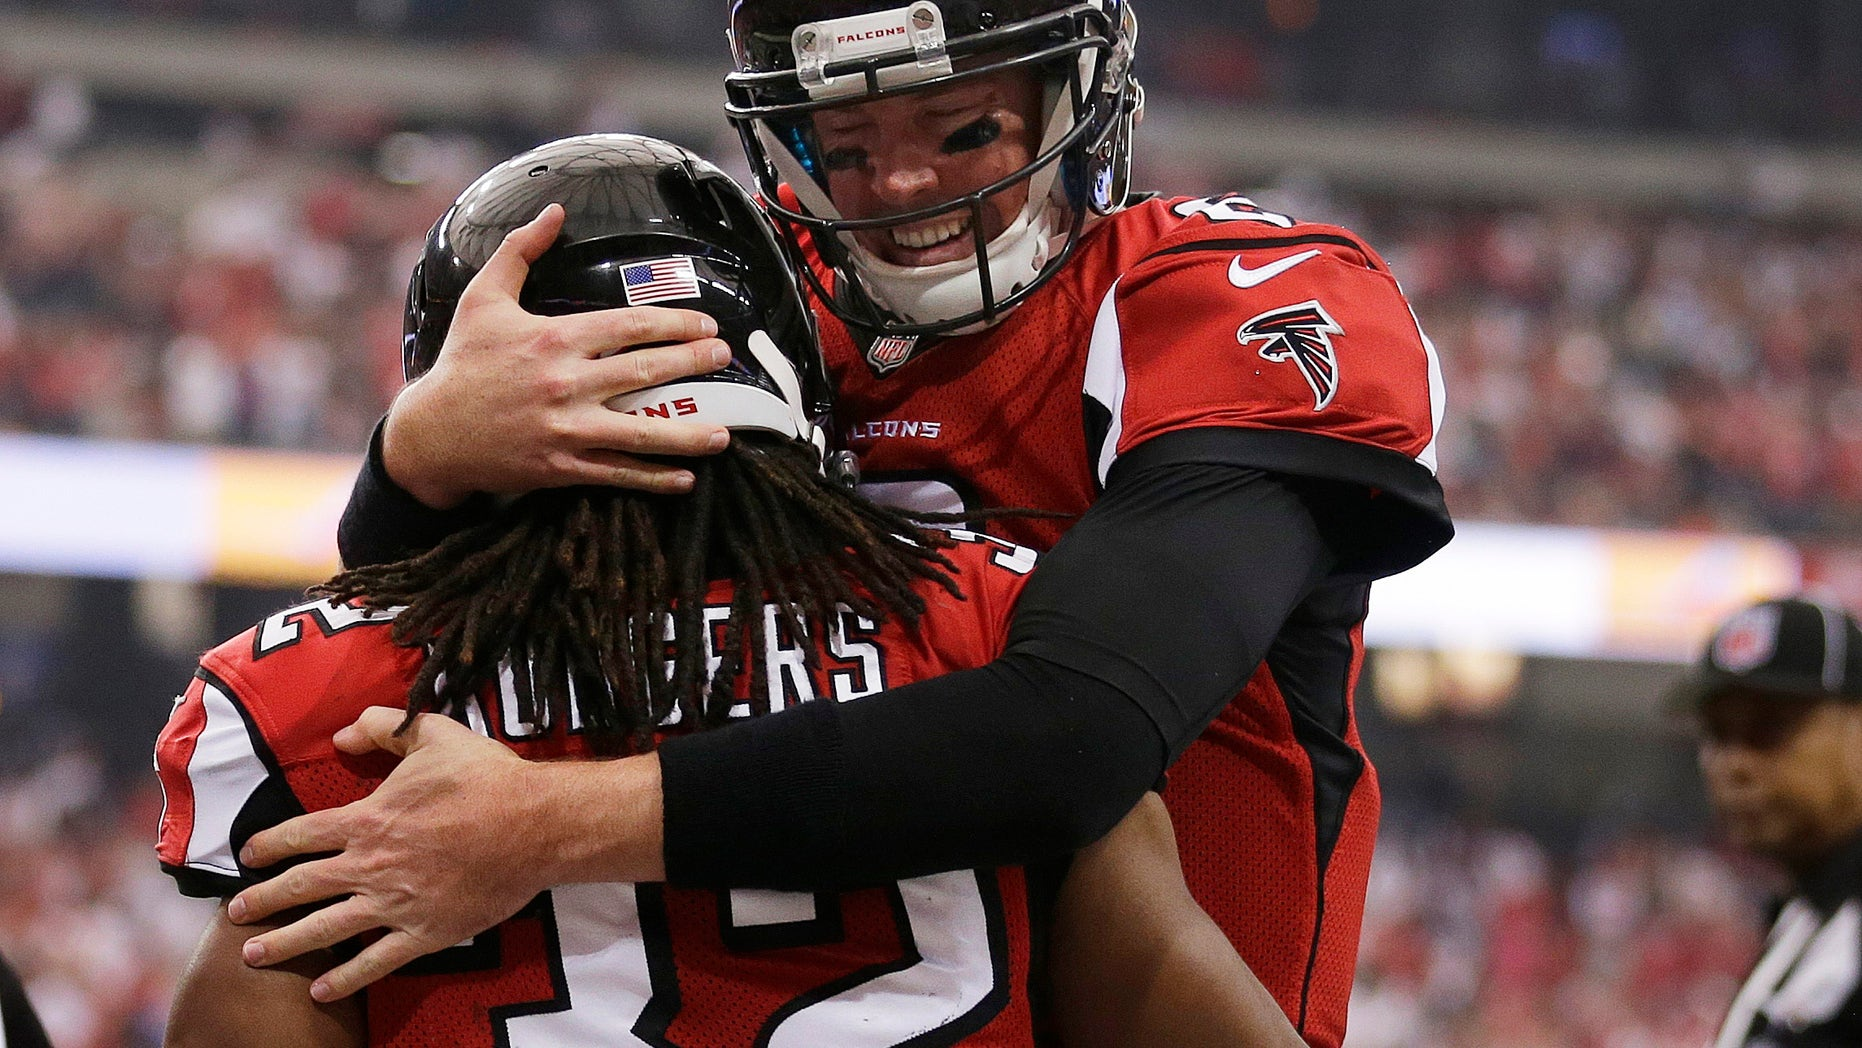 In this photo taken Sunday, Oct. 20, 2013, Atlanta Falcons quarterback Matt Ryan (2) celebrates with Jacquizz Rodgers (32) after Rodgers scored a touchdown against the Tampa Bay Buccaneers in the first half of an NFL football game in Atlanta. Ryan figured out a way to lead the Falcons out of their three-game losing streak despite having no running game and new names at wide receiver. (AP Photo/John Bazemore)